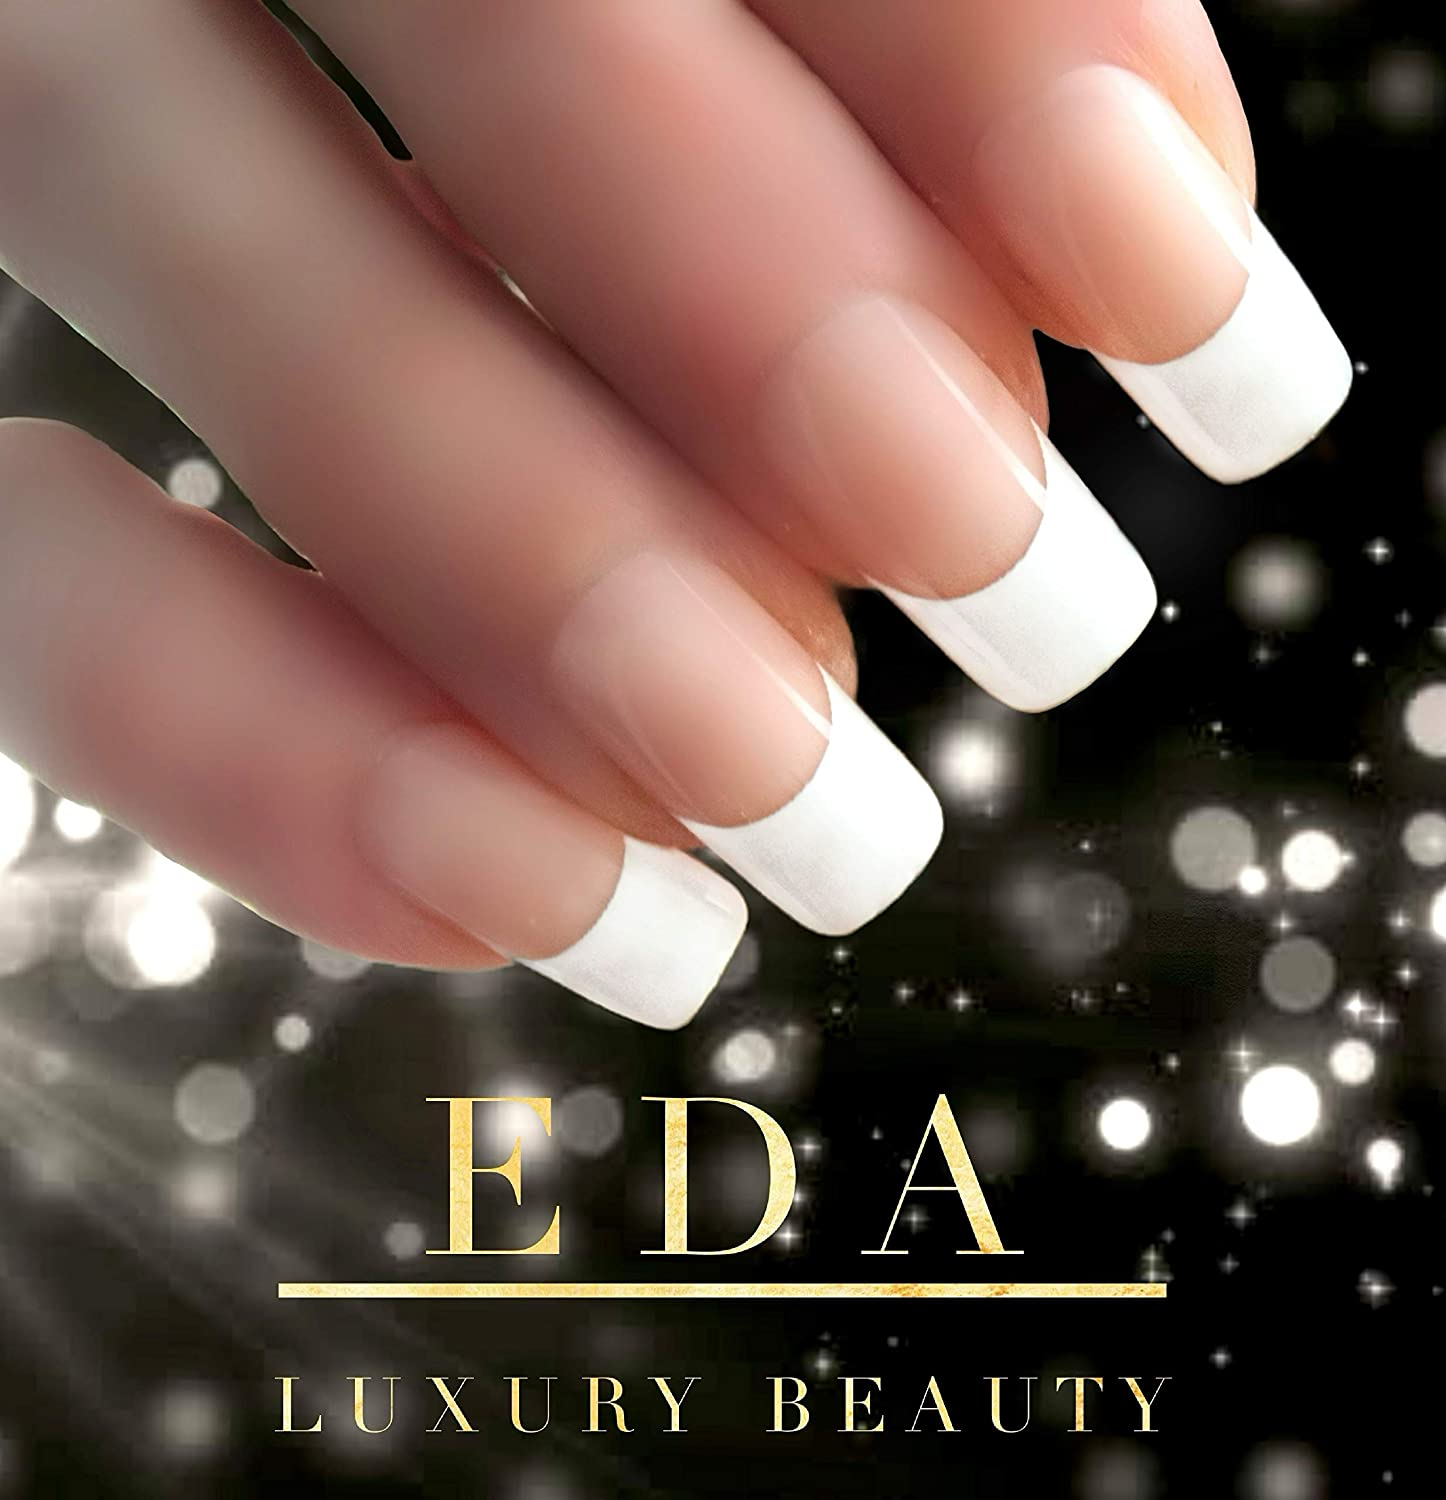 Amazon Com Eda Luxury Beauty Natural Nude Pink White French Design Glamorous Design Full Cover Press On Gel Glitter Artificial Tips Acrylic False Nails Extra Long Ballerina Coffin Square Super Fashion Fake